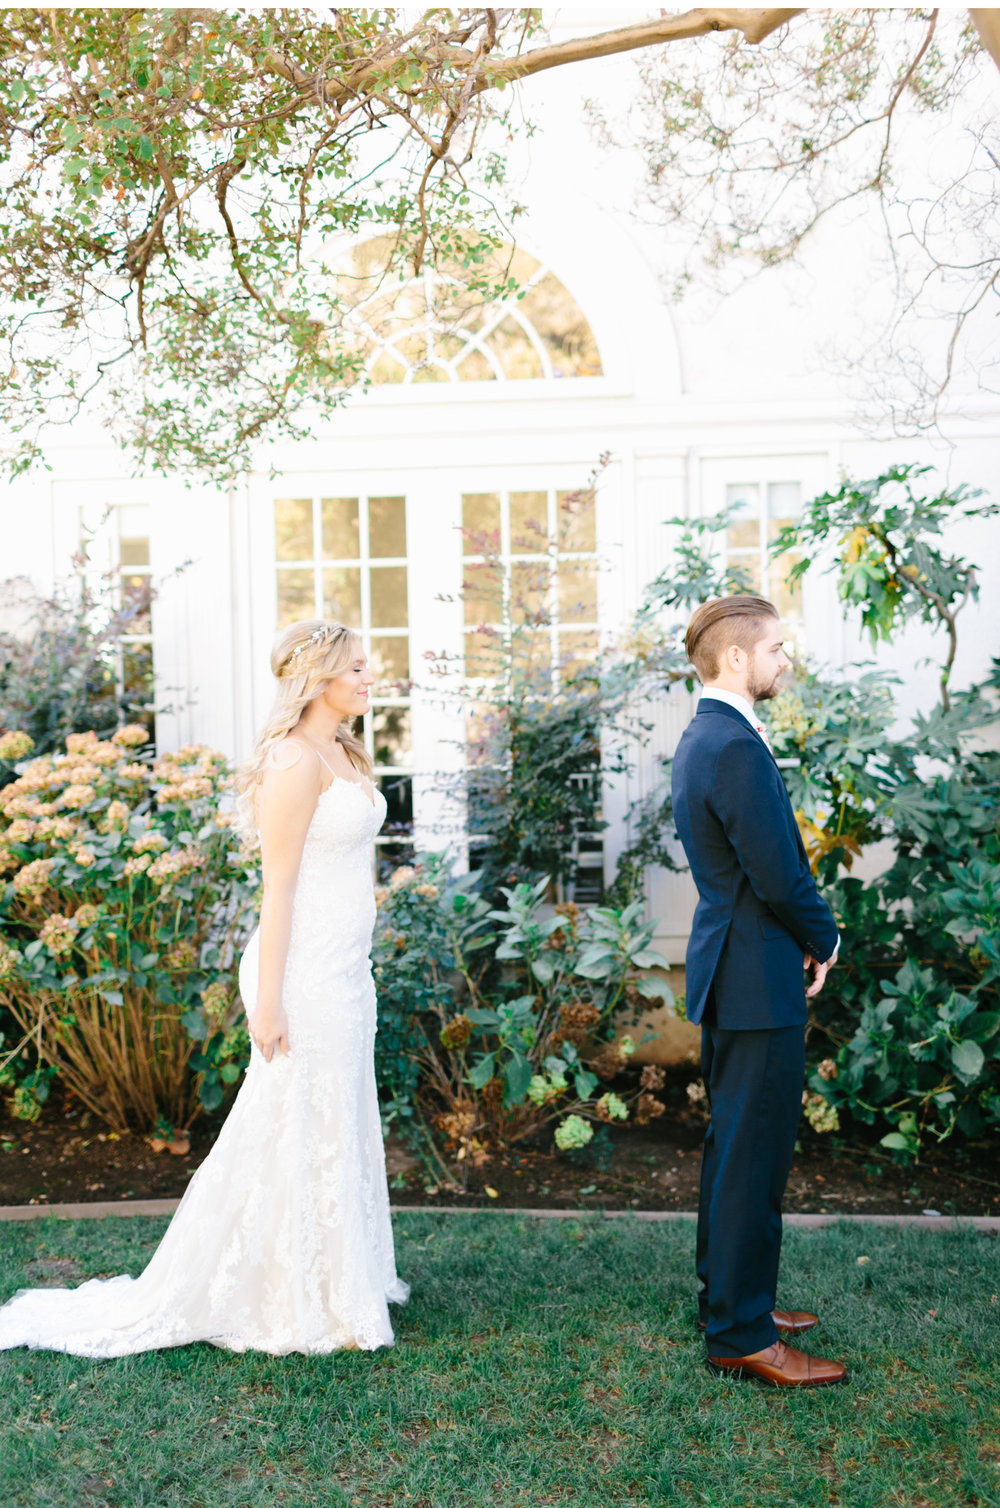 Malibu-Wedding-Photographer-Natalie-Schutt-Photography-Vizcaya_11.jpg